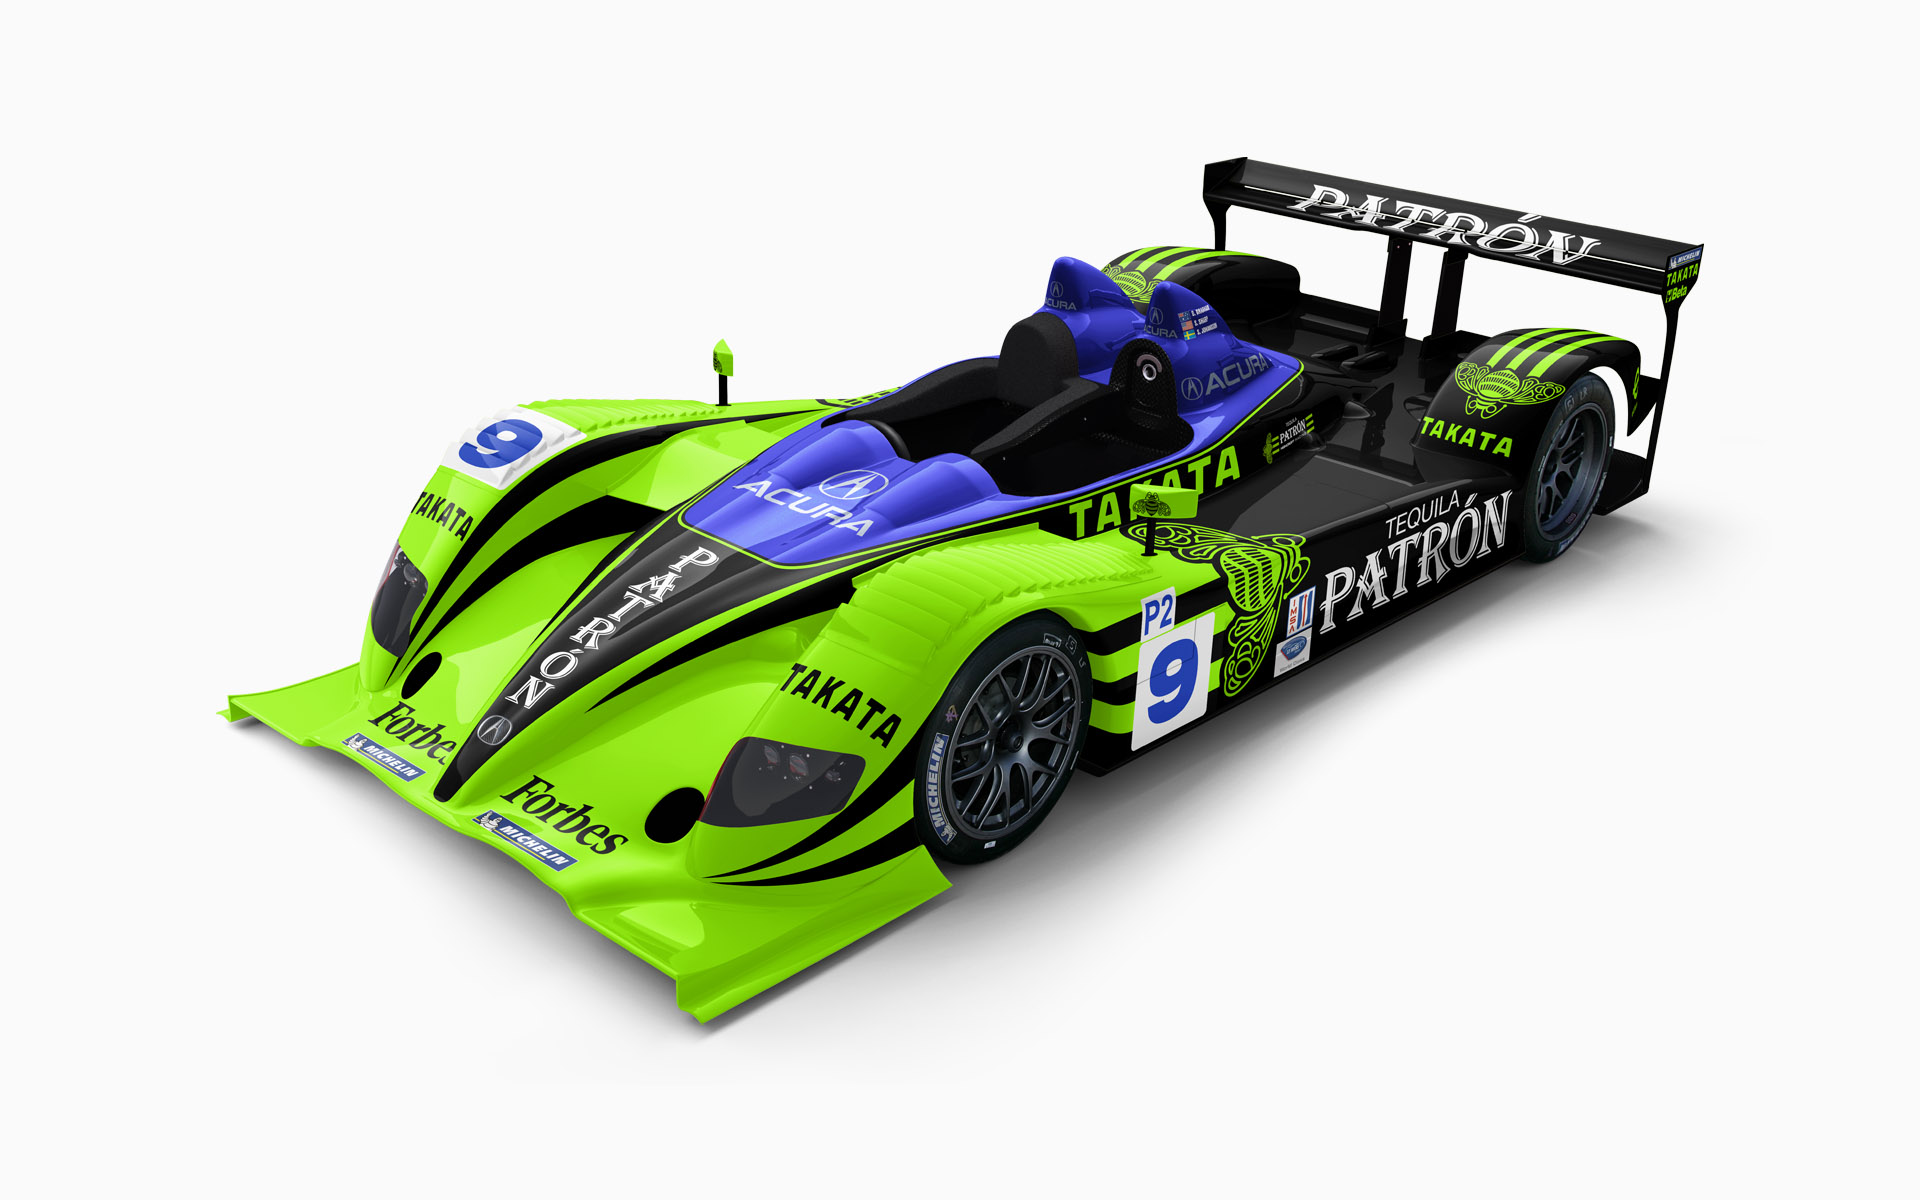 2008 Pátron Highcroft Racing Acura ARX-01b LMP2 Livery Visualization